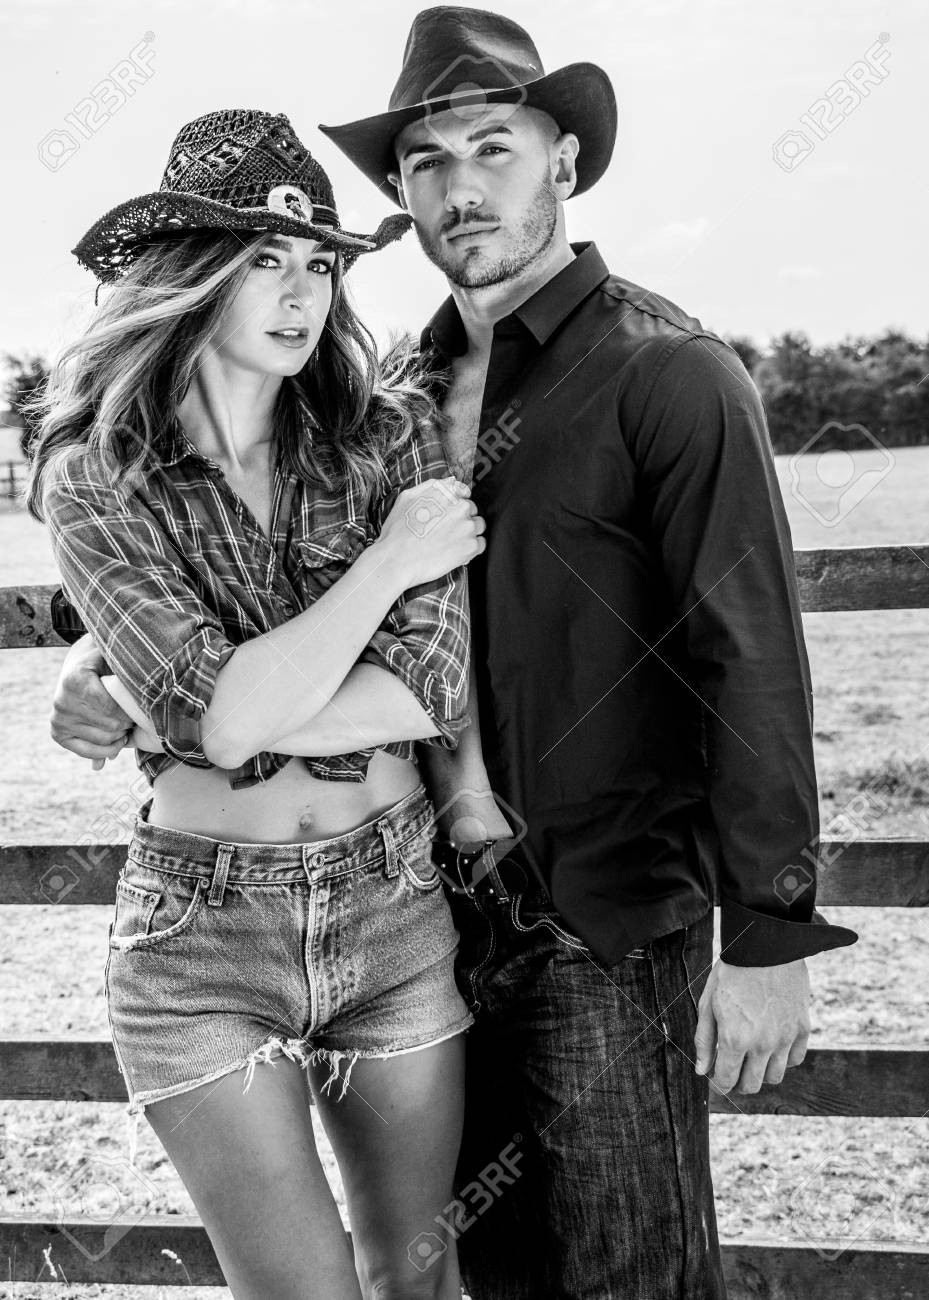 dating sites for cowboys and cowgirls